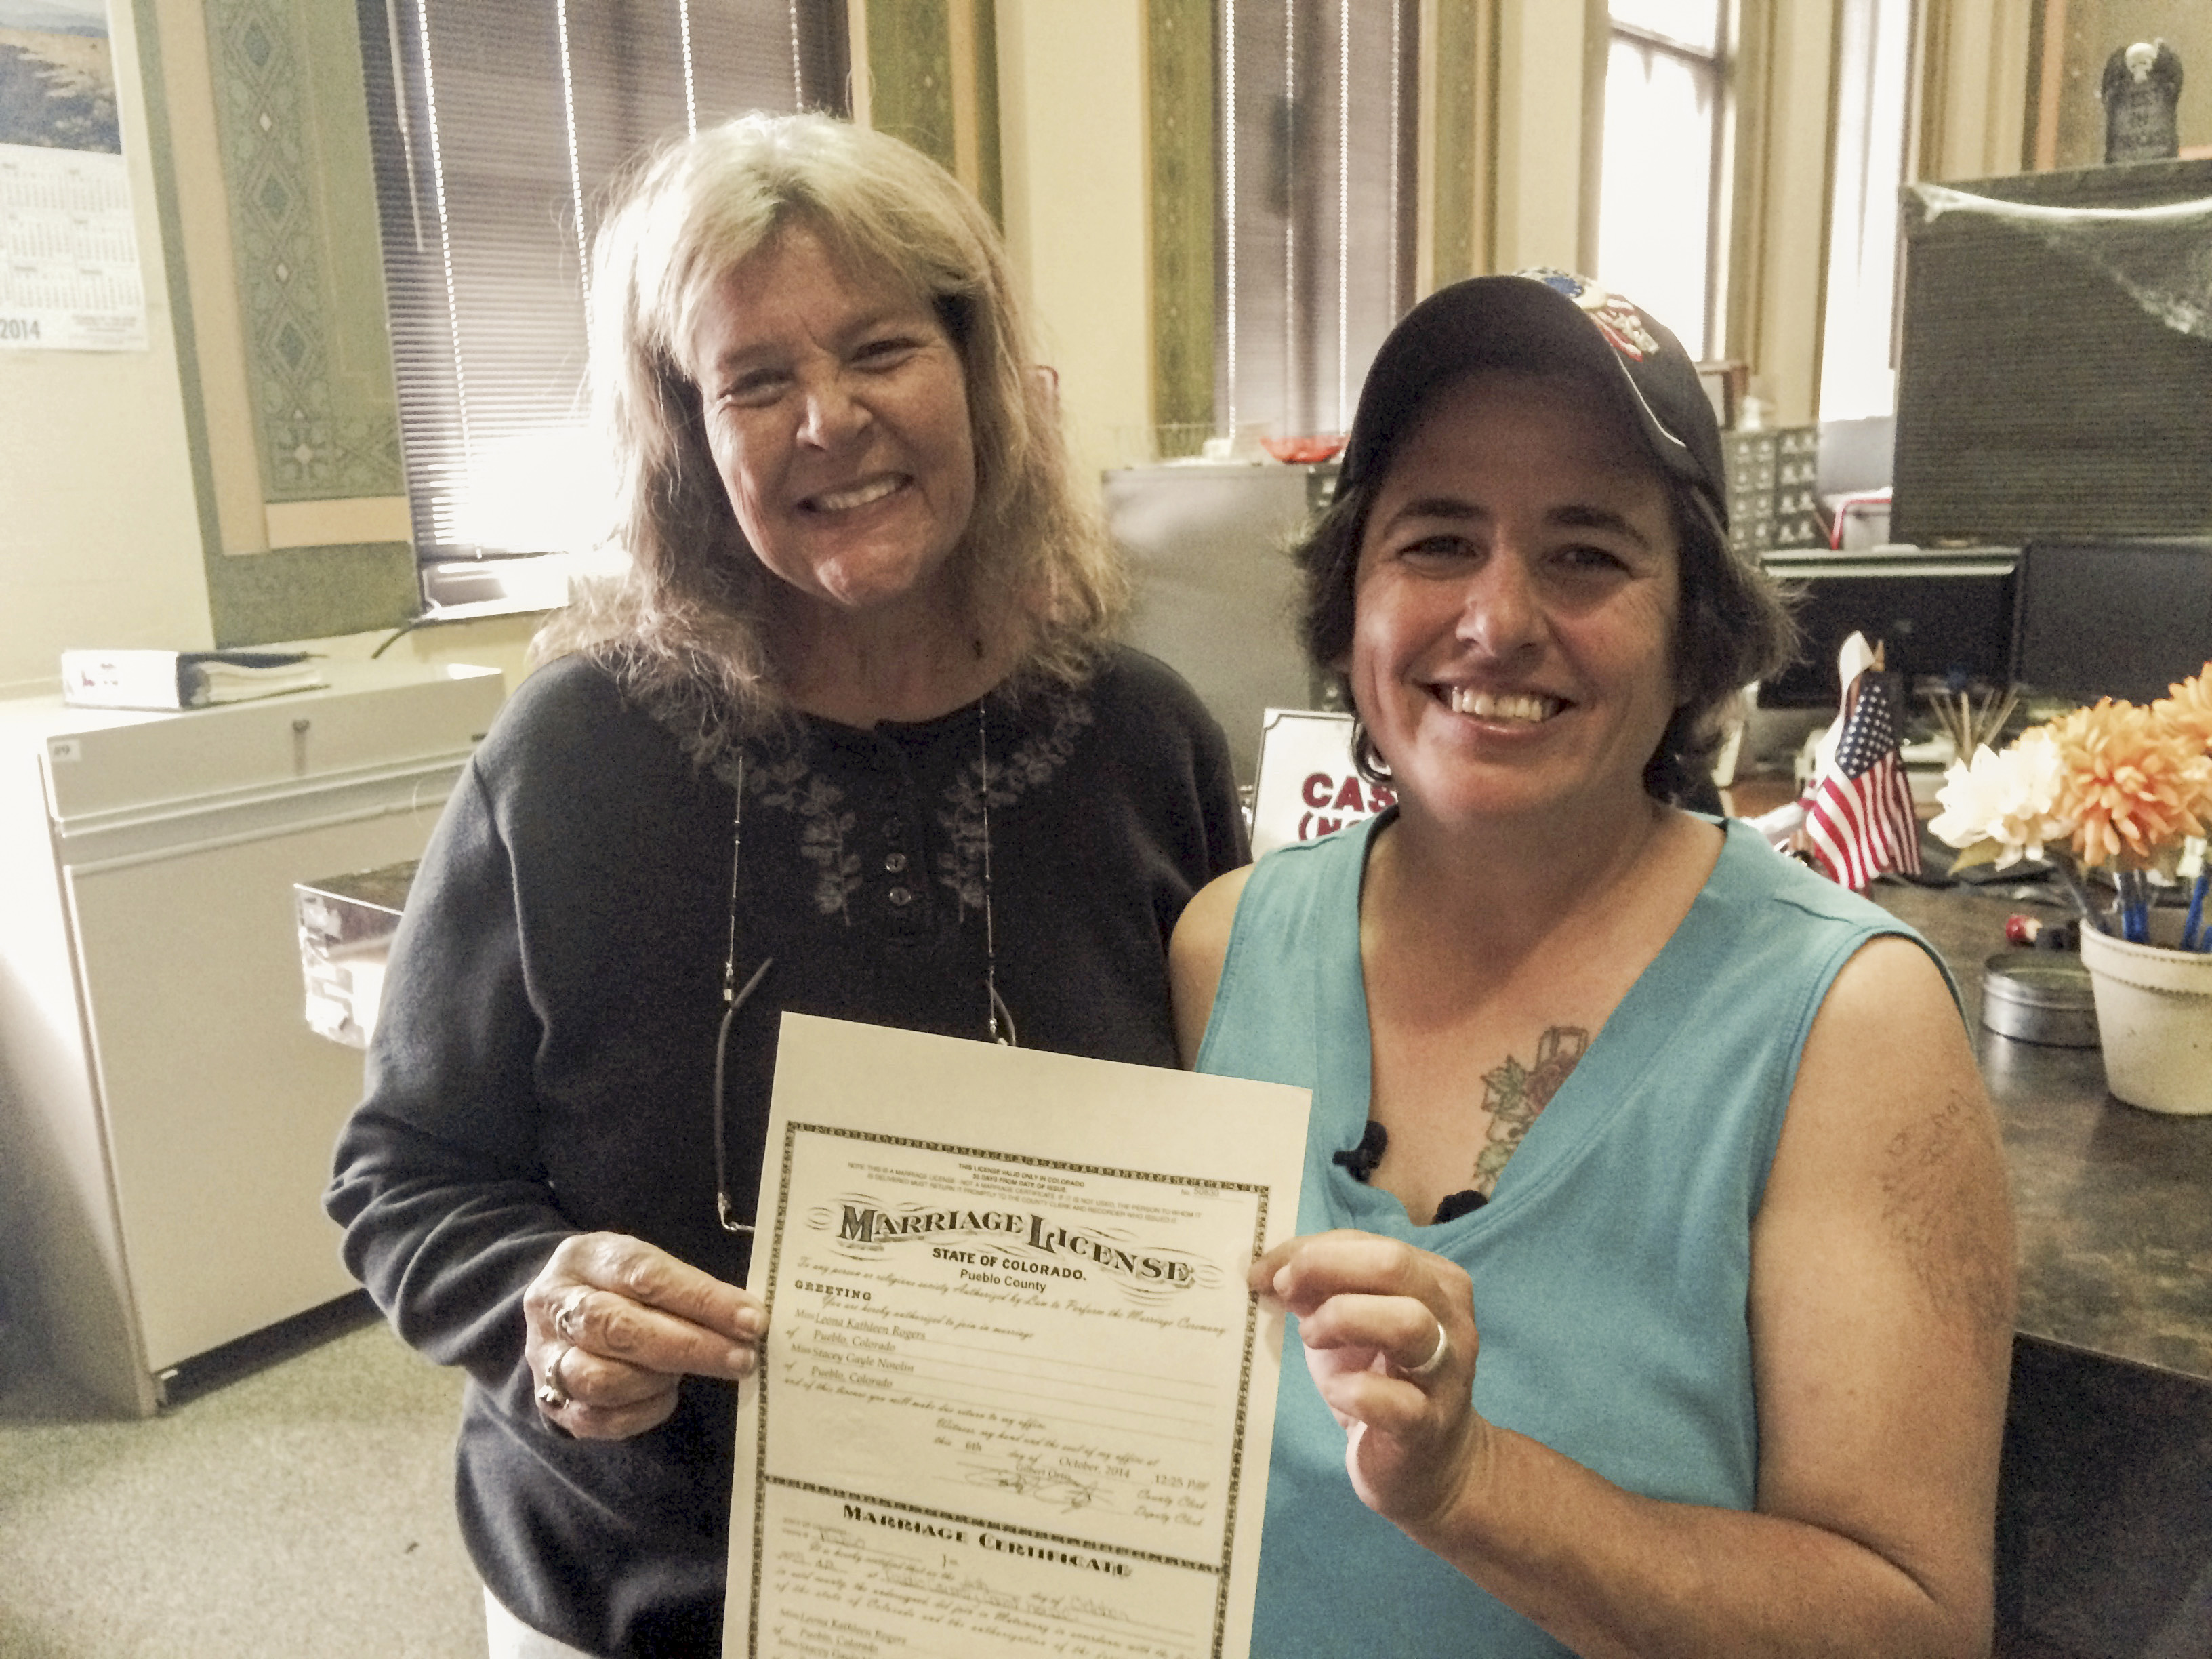 Photo: Lesbian couple in Pueblo issued marriage license